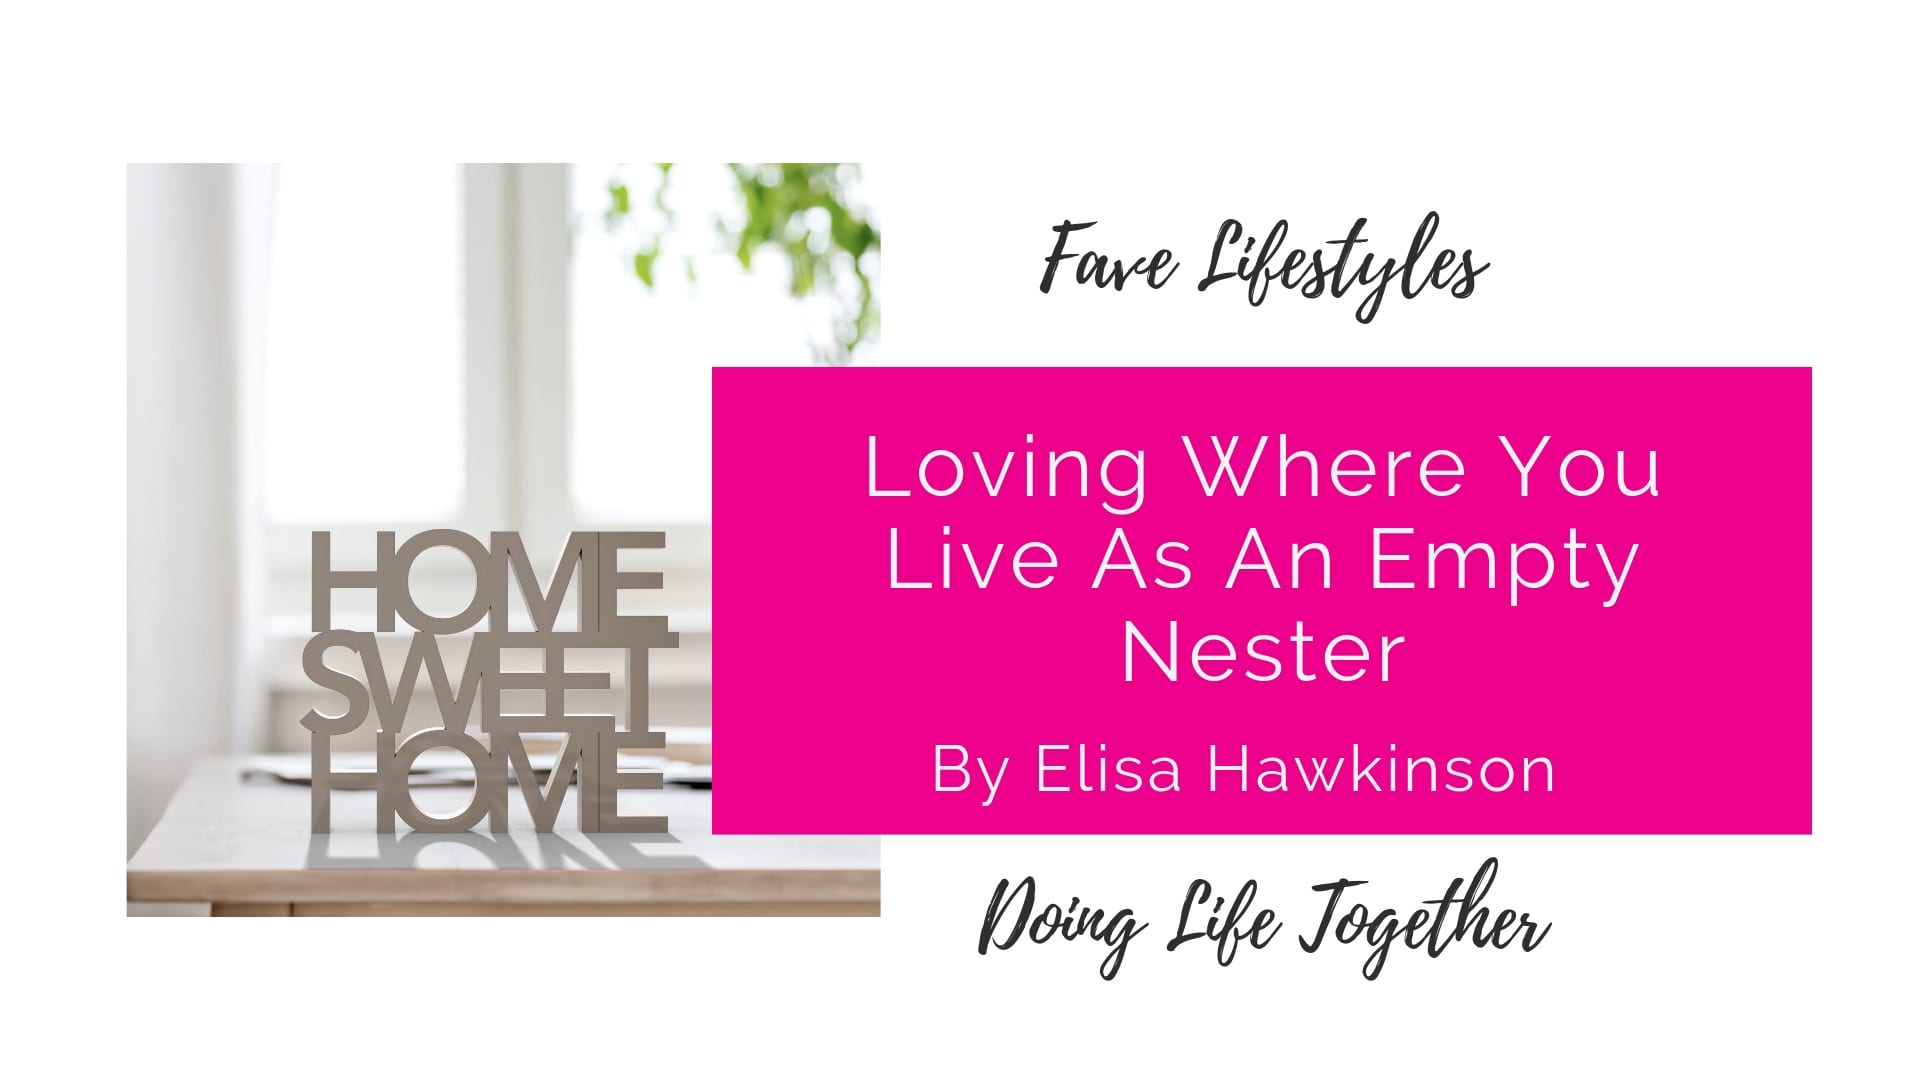 Loving Where You Live as an Empty Nester